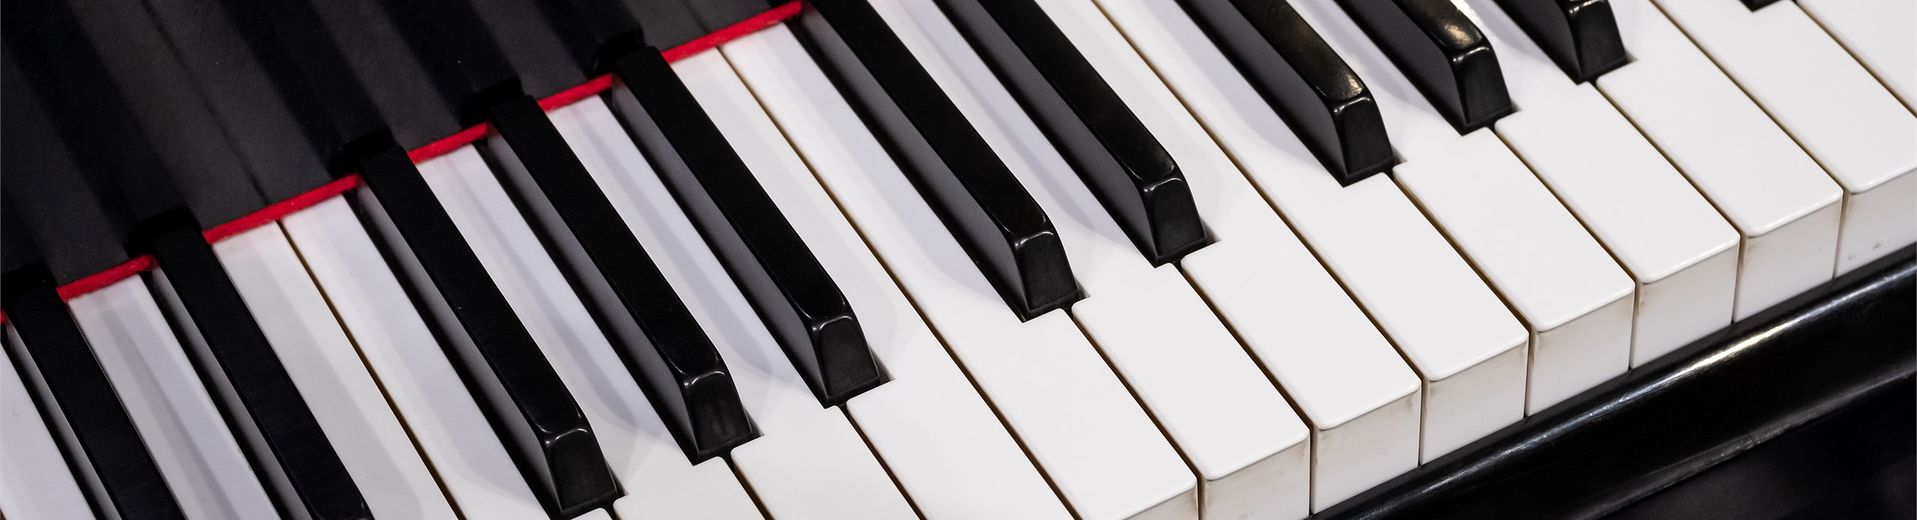 The black-and-white keys of a Steinway piano.